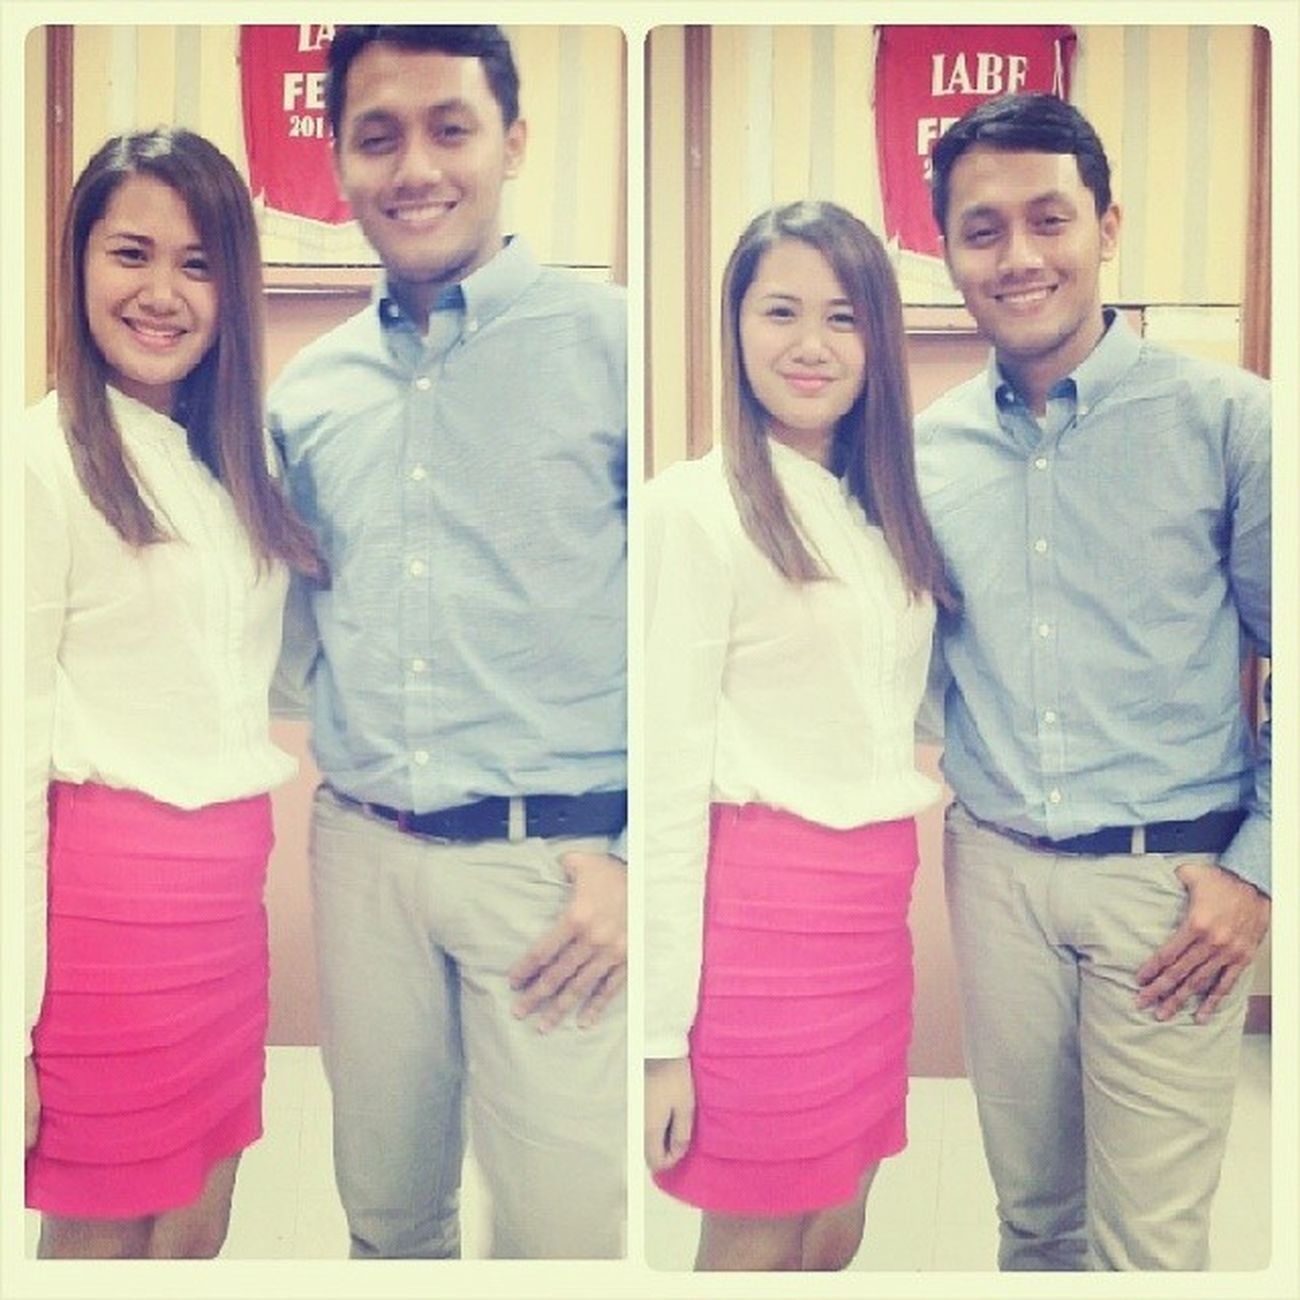 With my CareerJh buddy, @chikomatsuda IABFbatch2014